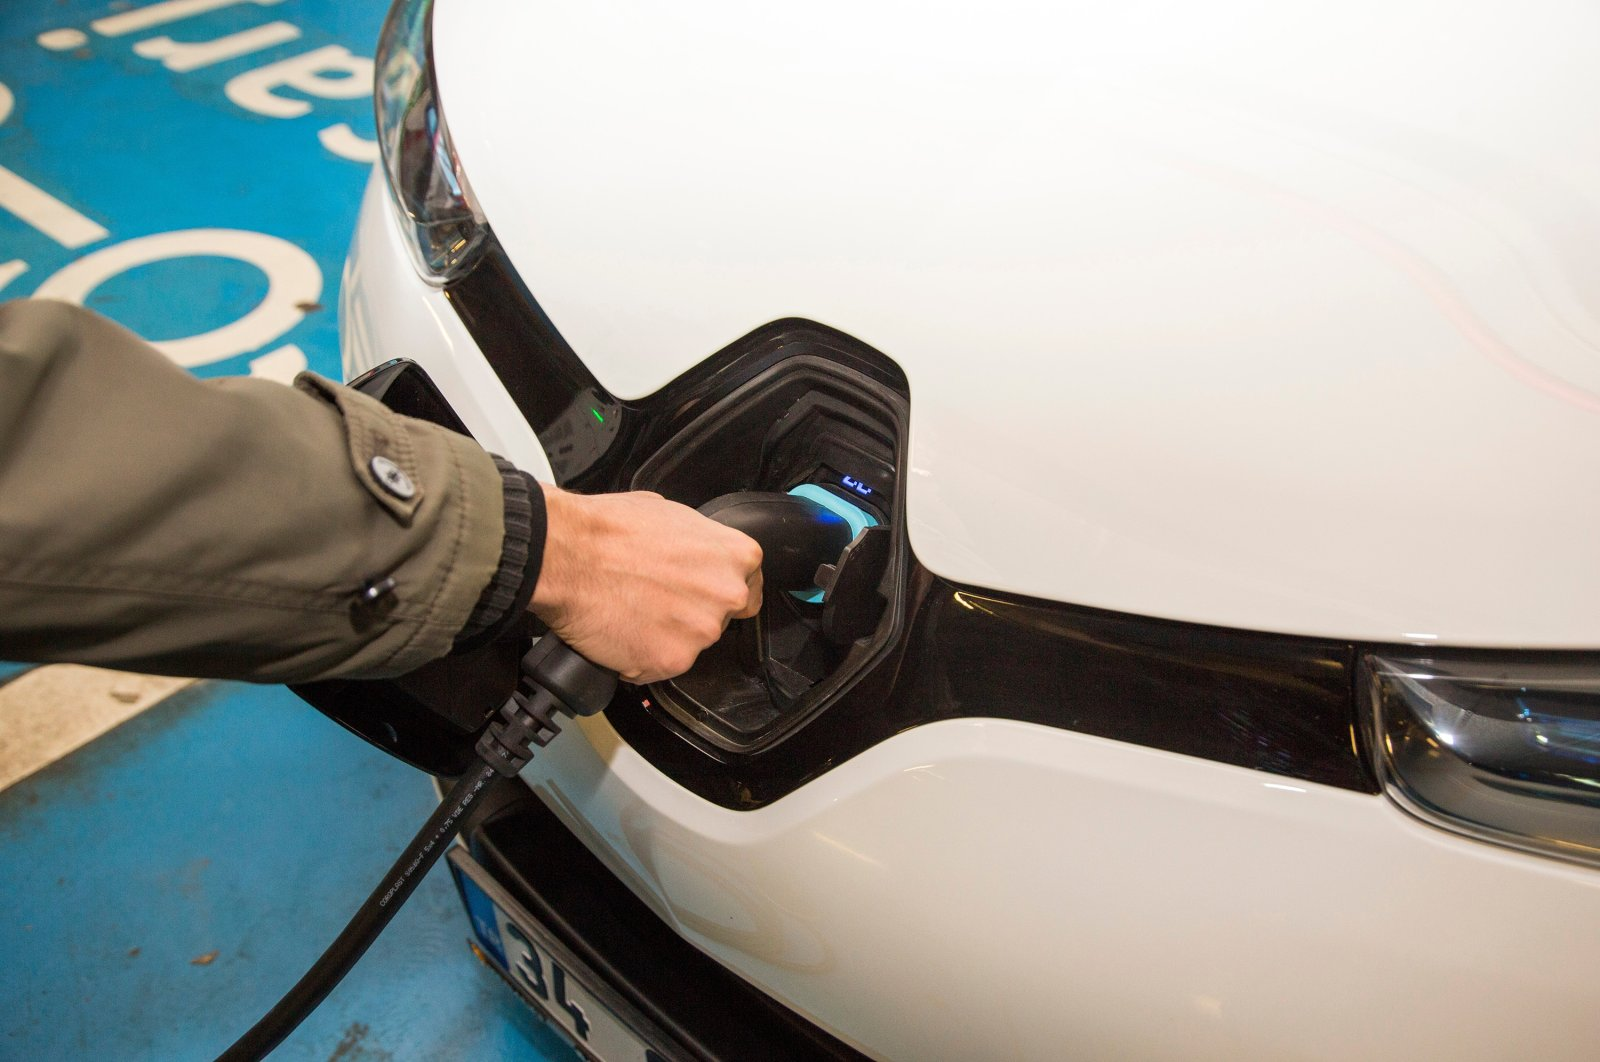 An electric car is charged at a charging station in Istanbul, Turkey, Dec. 13, 2017. (Shutterstock Photo)